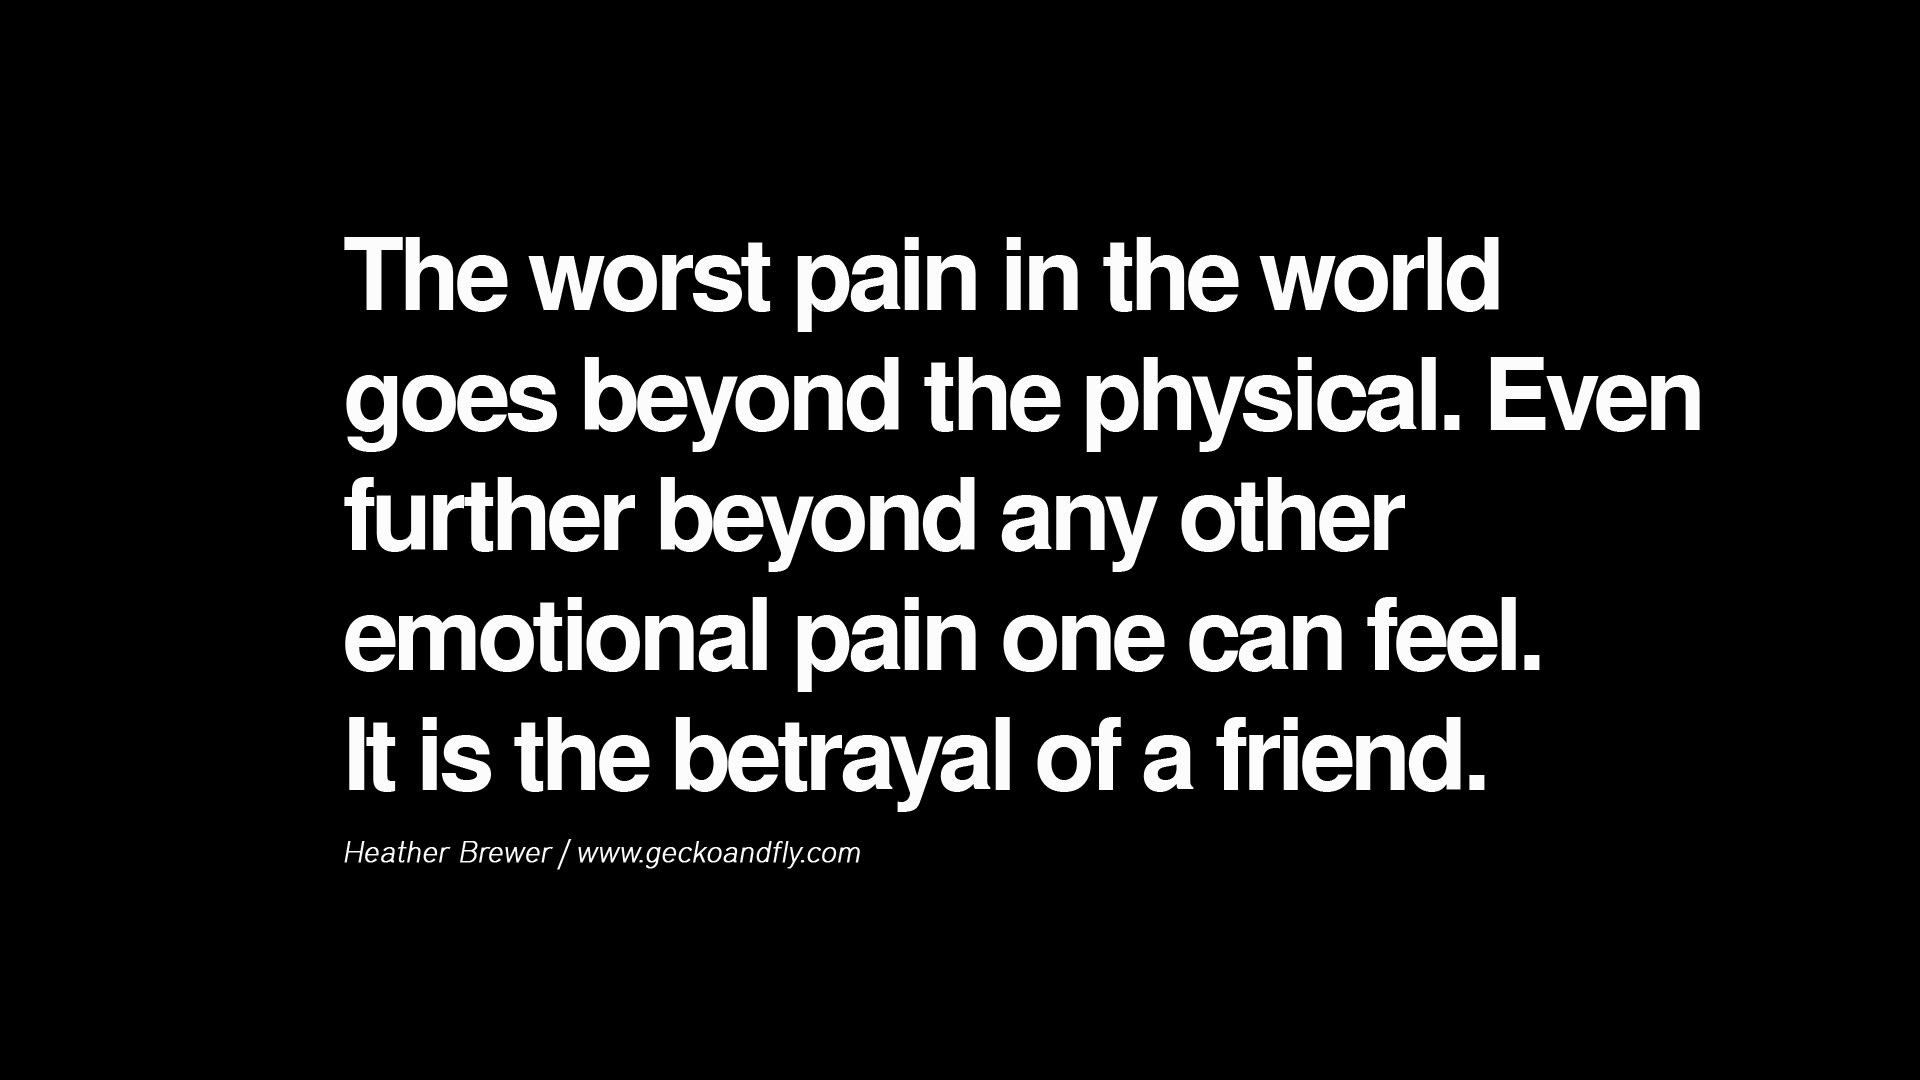 Friend Betrayal Quotes: Betrayed By A Friend Quotes. QuotesGram